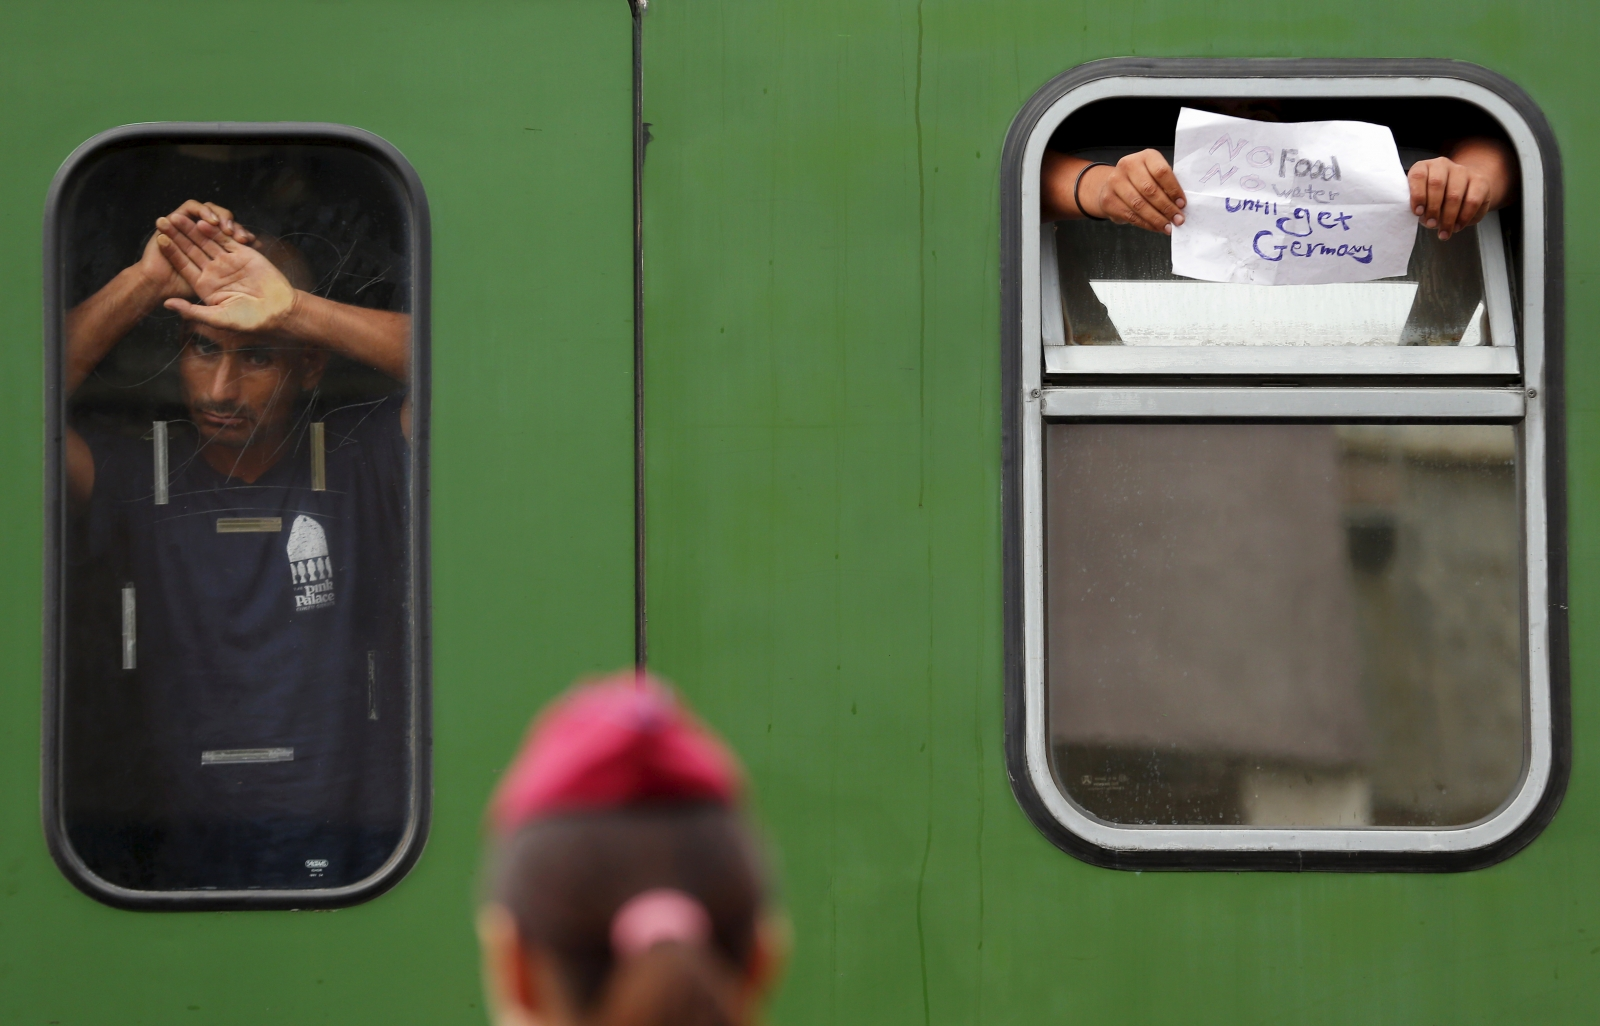 Bicske Hungary migrant train standoff